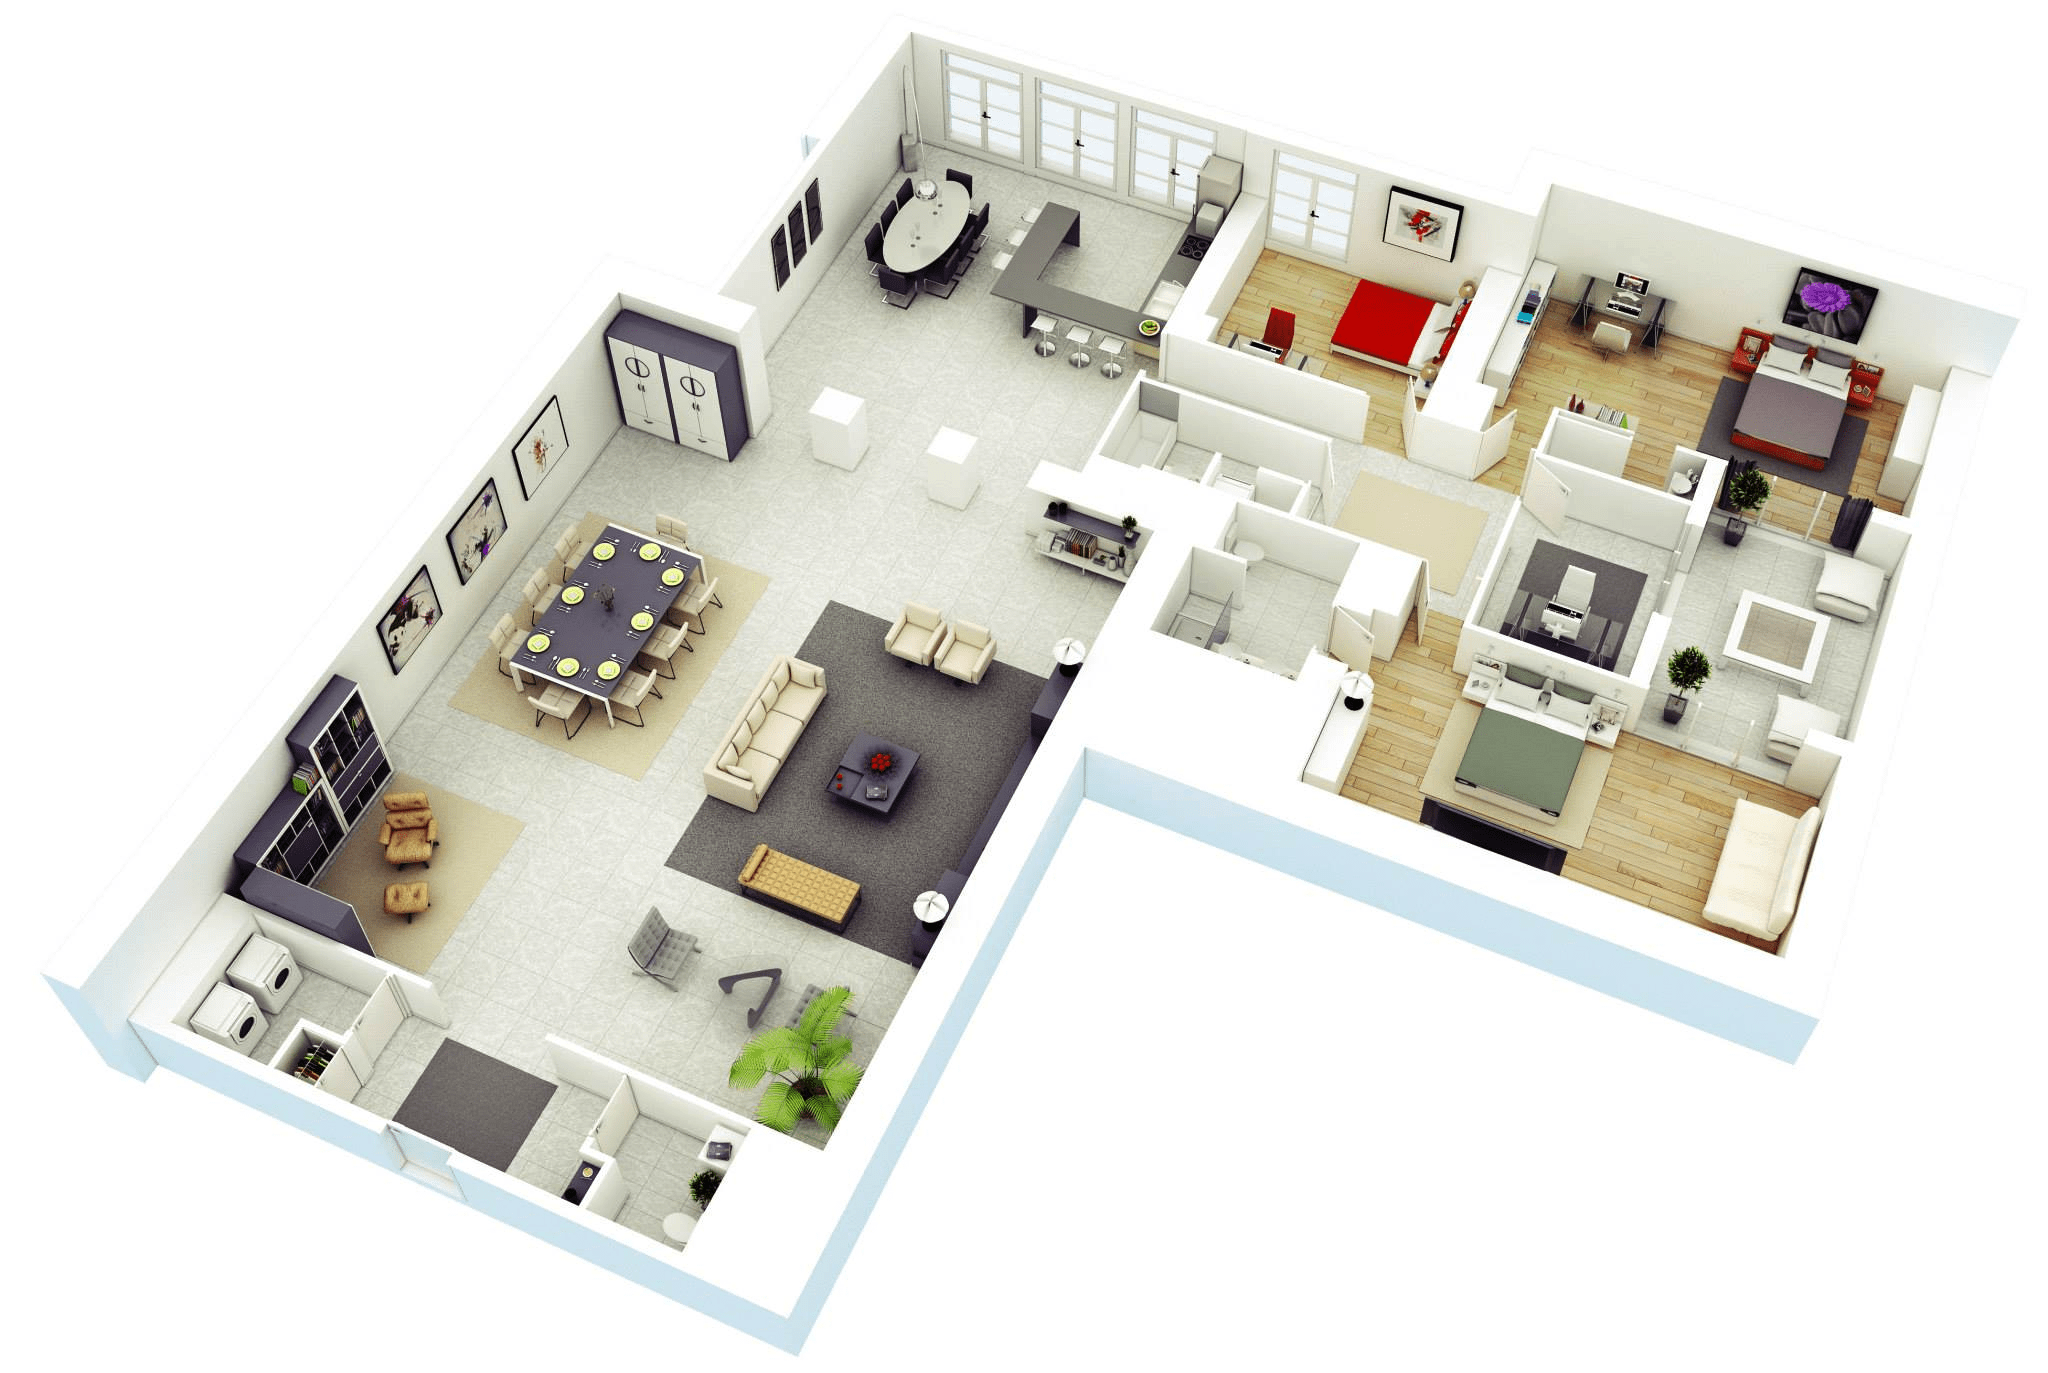 13 Best Free Home and Interior Design Apps, Software and Tools